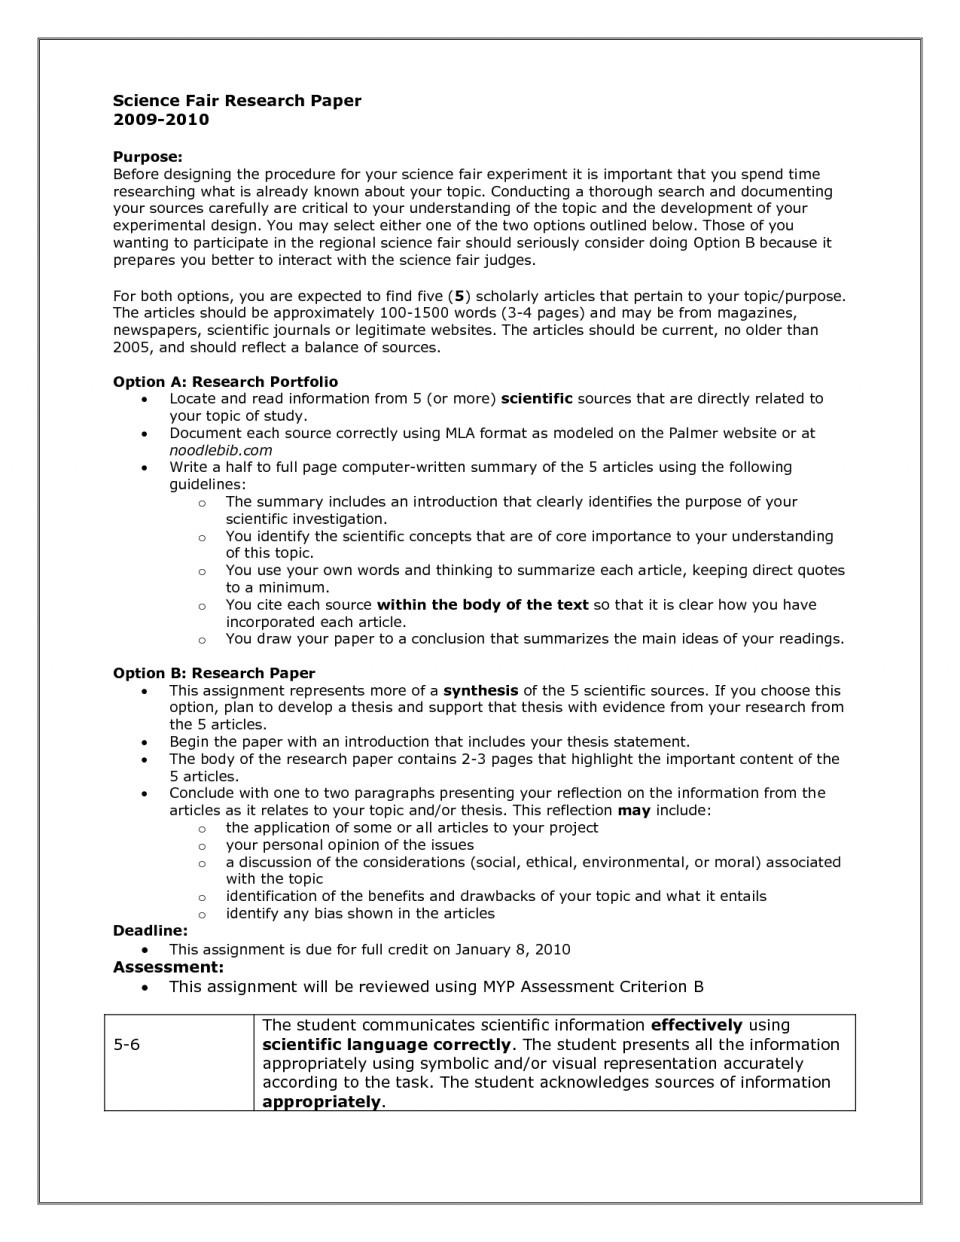 002 Research Paper Format For Writing Scientific Best Photos Of Science Procedure Template Fair Essay Example L Unique A 960